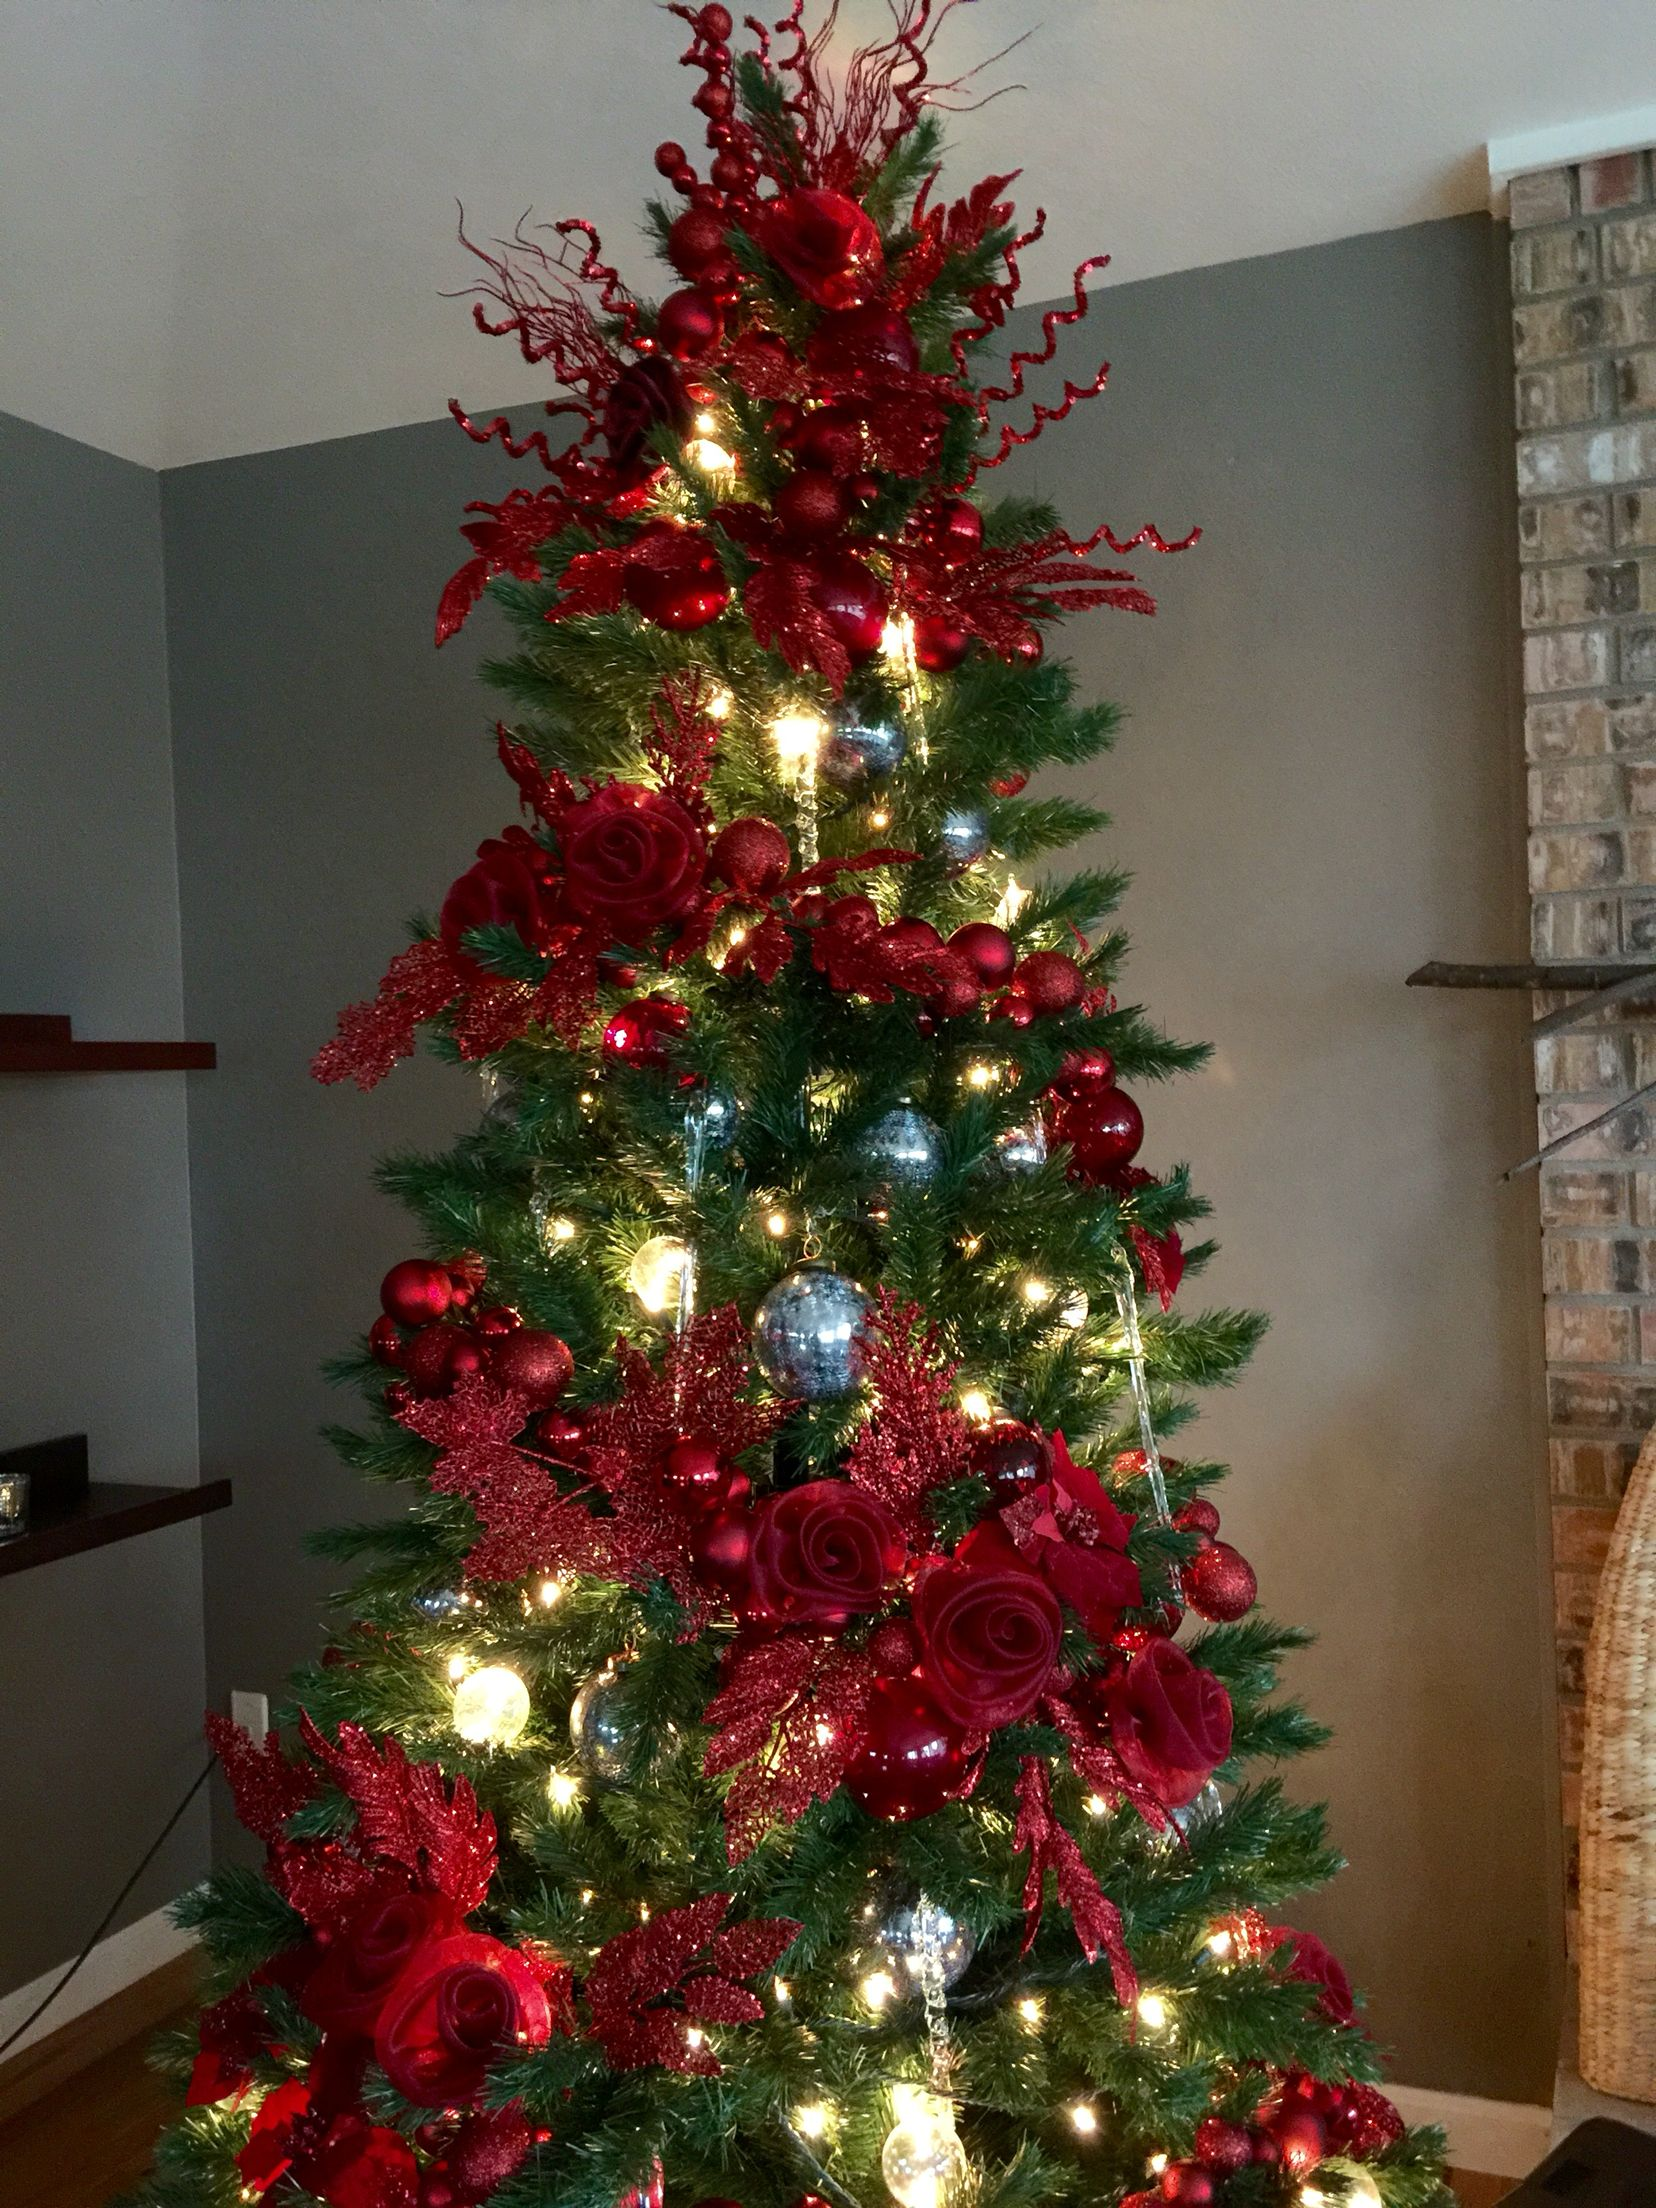 Created This Tree For Xmas 2015 Made A Few Red Roses Using Organza Cloth And Attached Them Christmas Tree Roses Floral Christmas Tree Holiday Decor Christmas